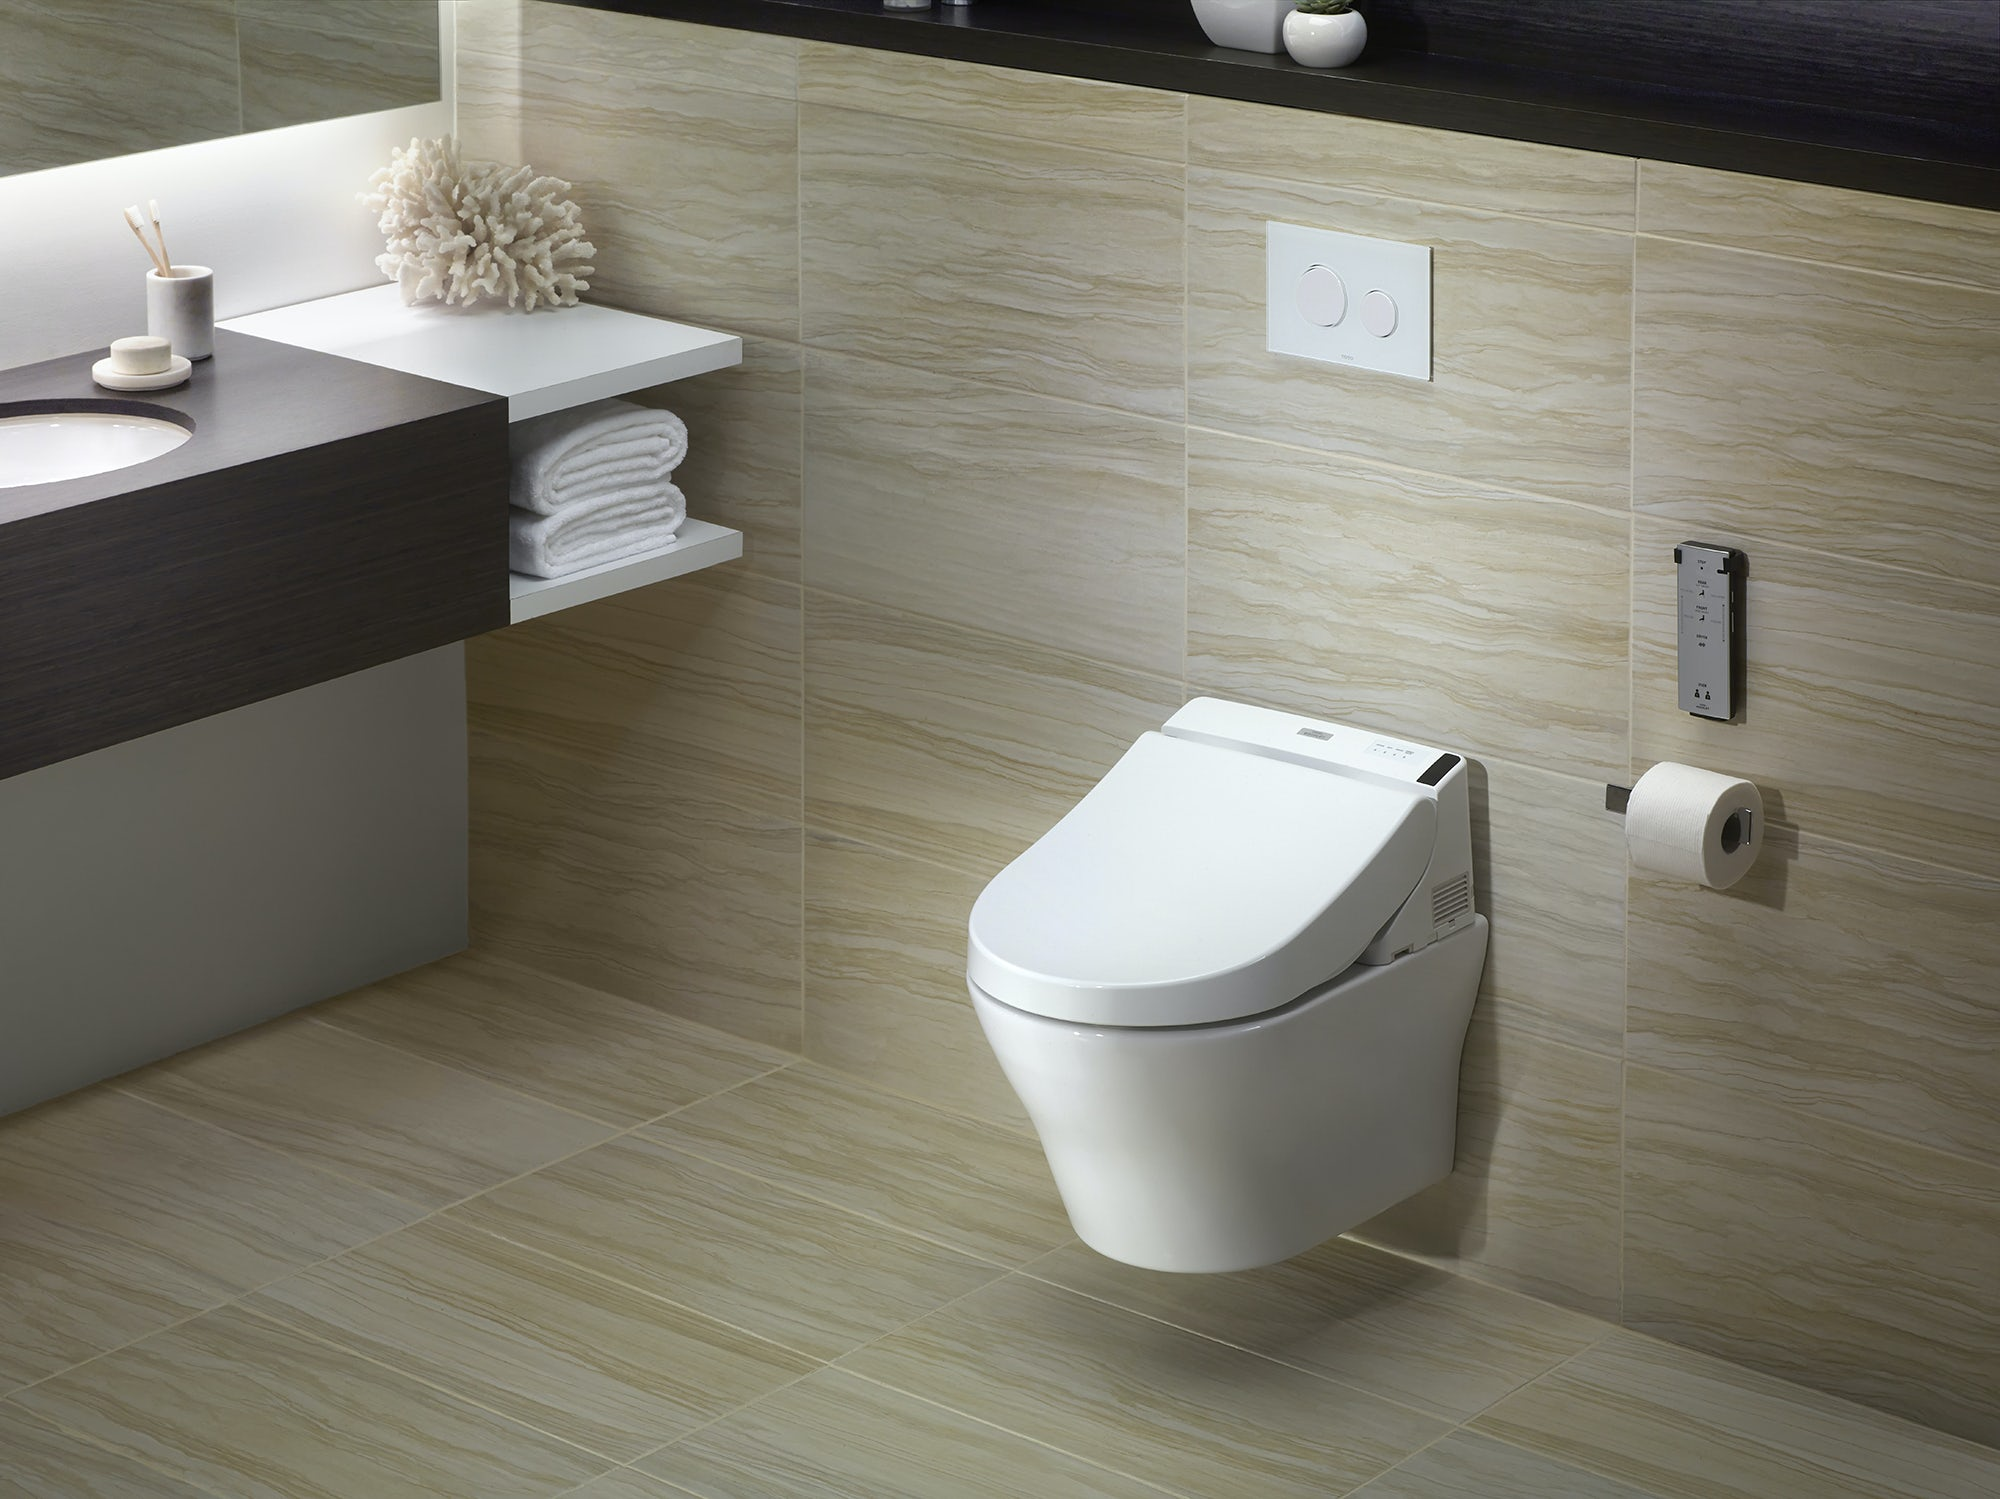 Employees Are Big Ass Fans of the Eco-Friendly WASHLET